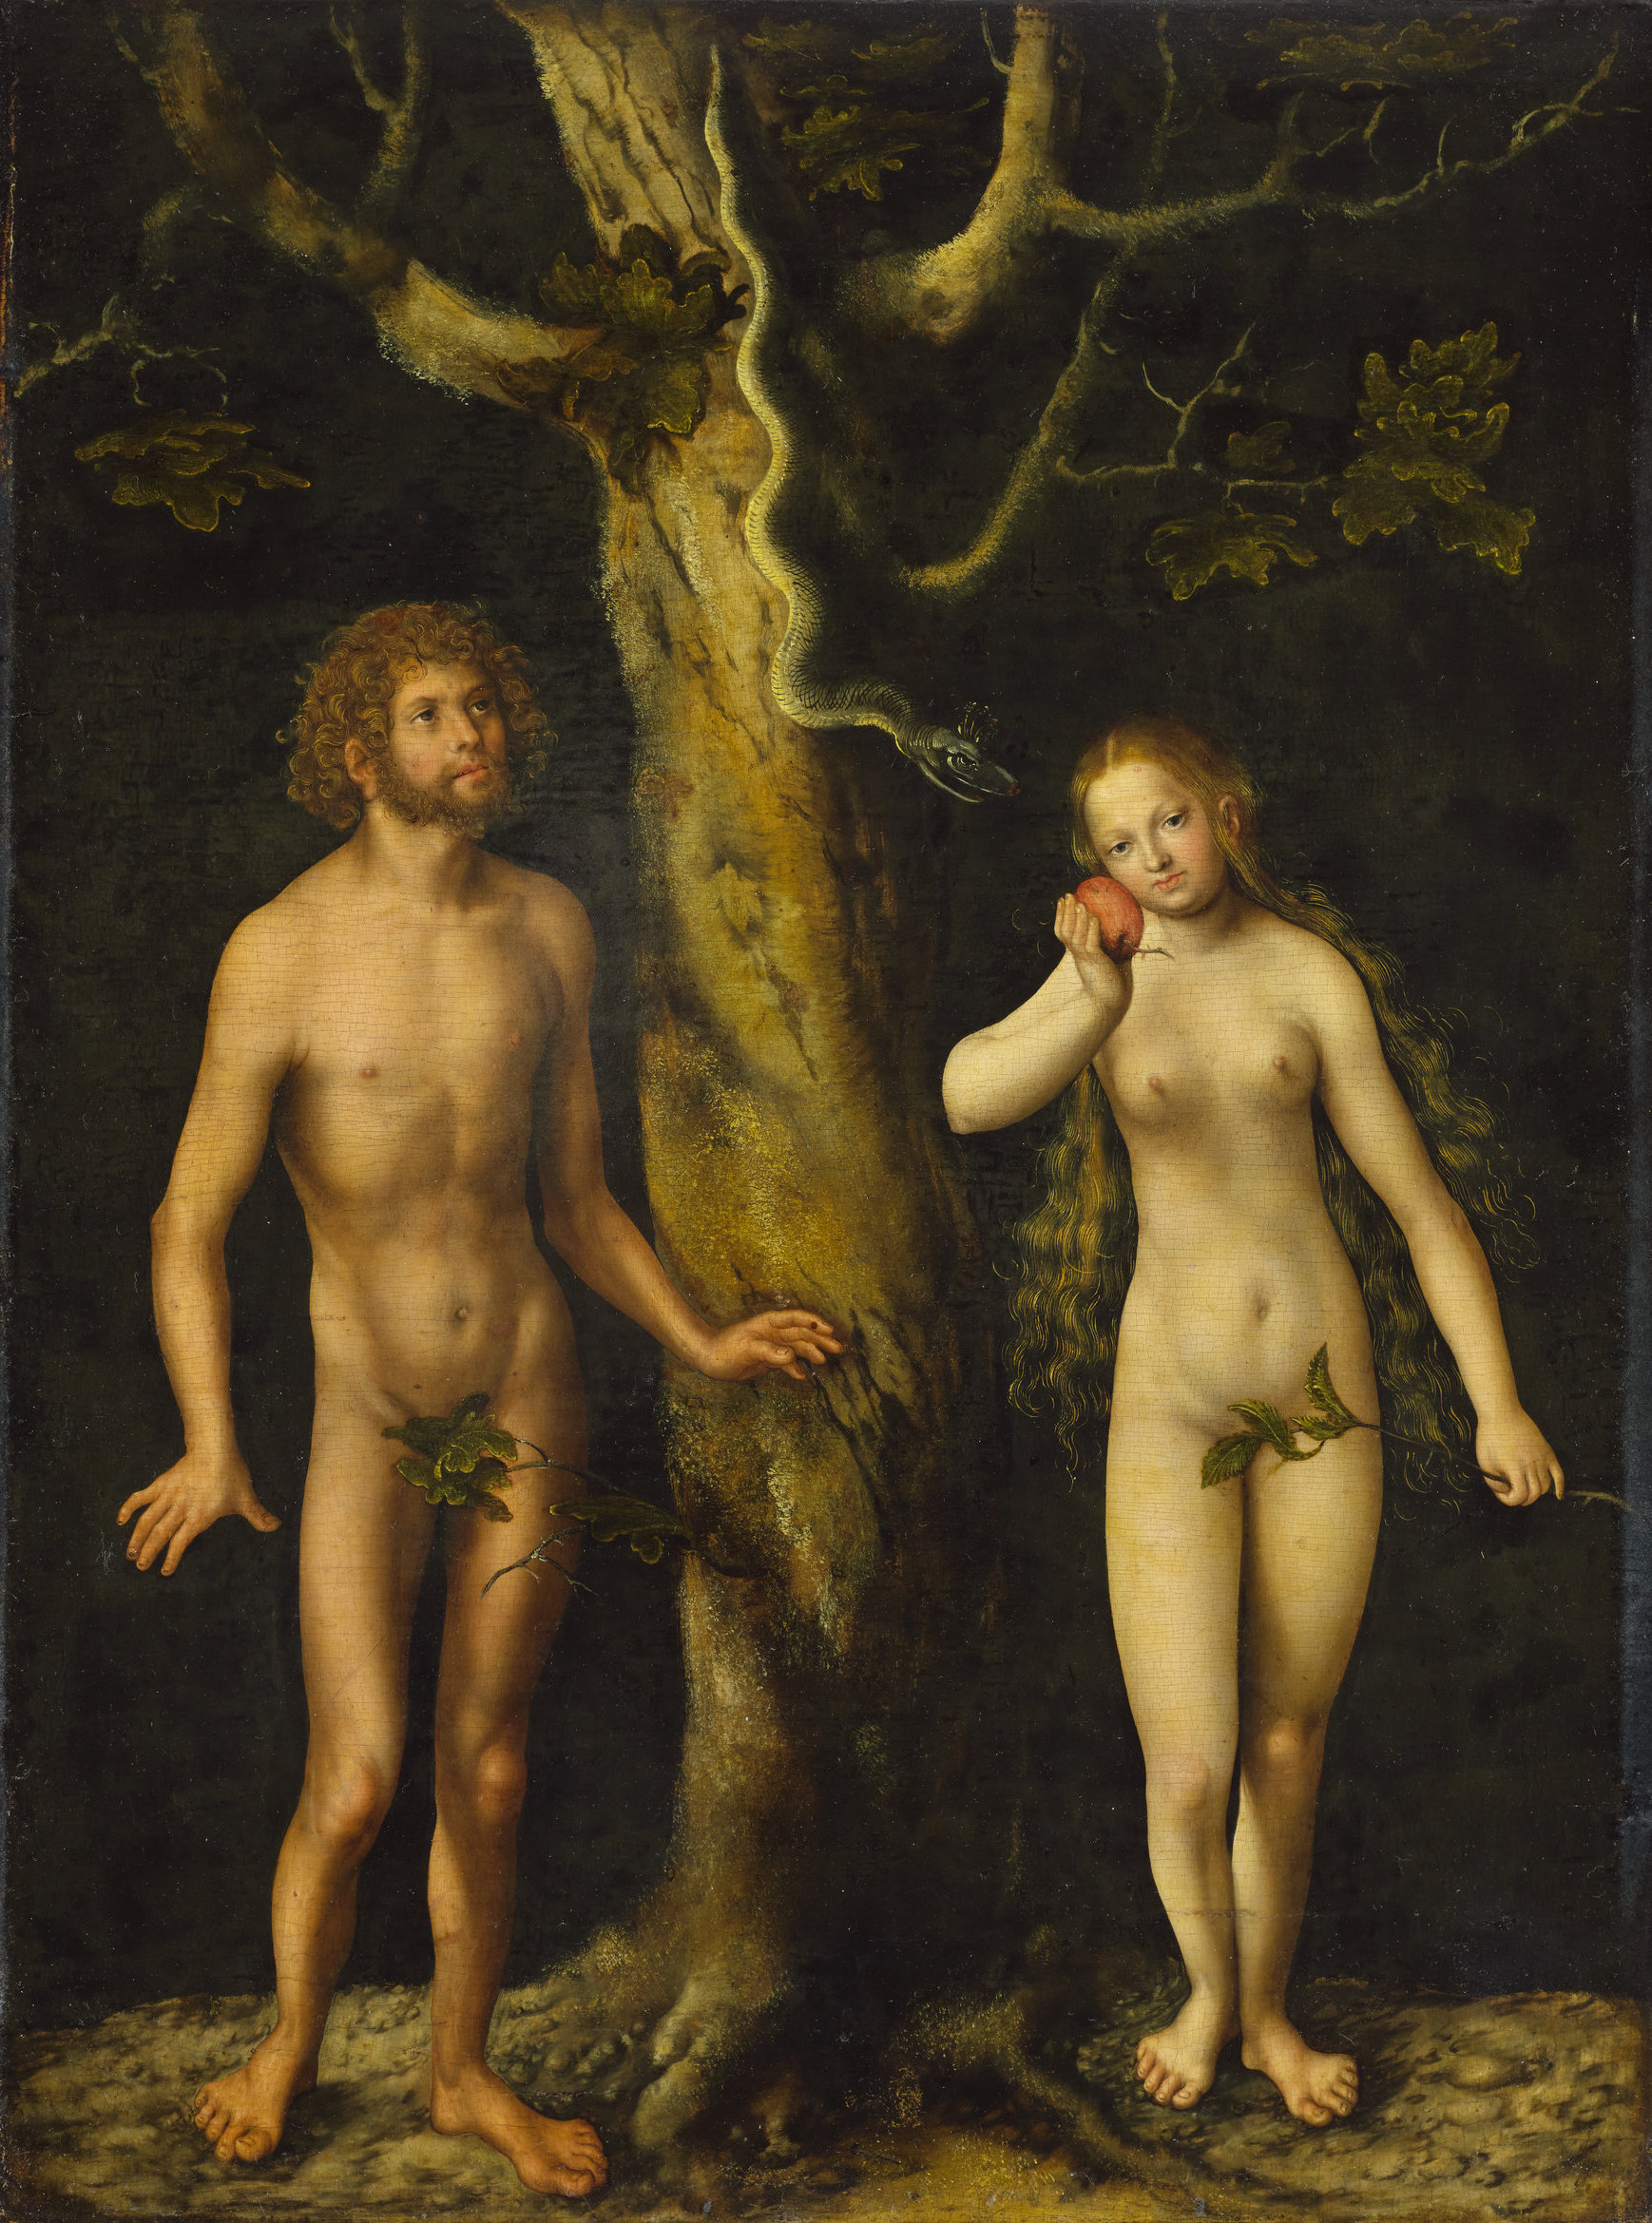 Adam & Eve depiction